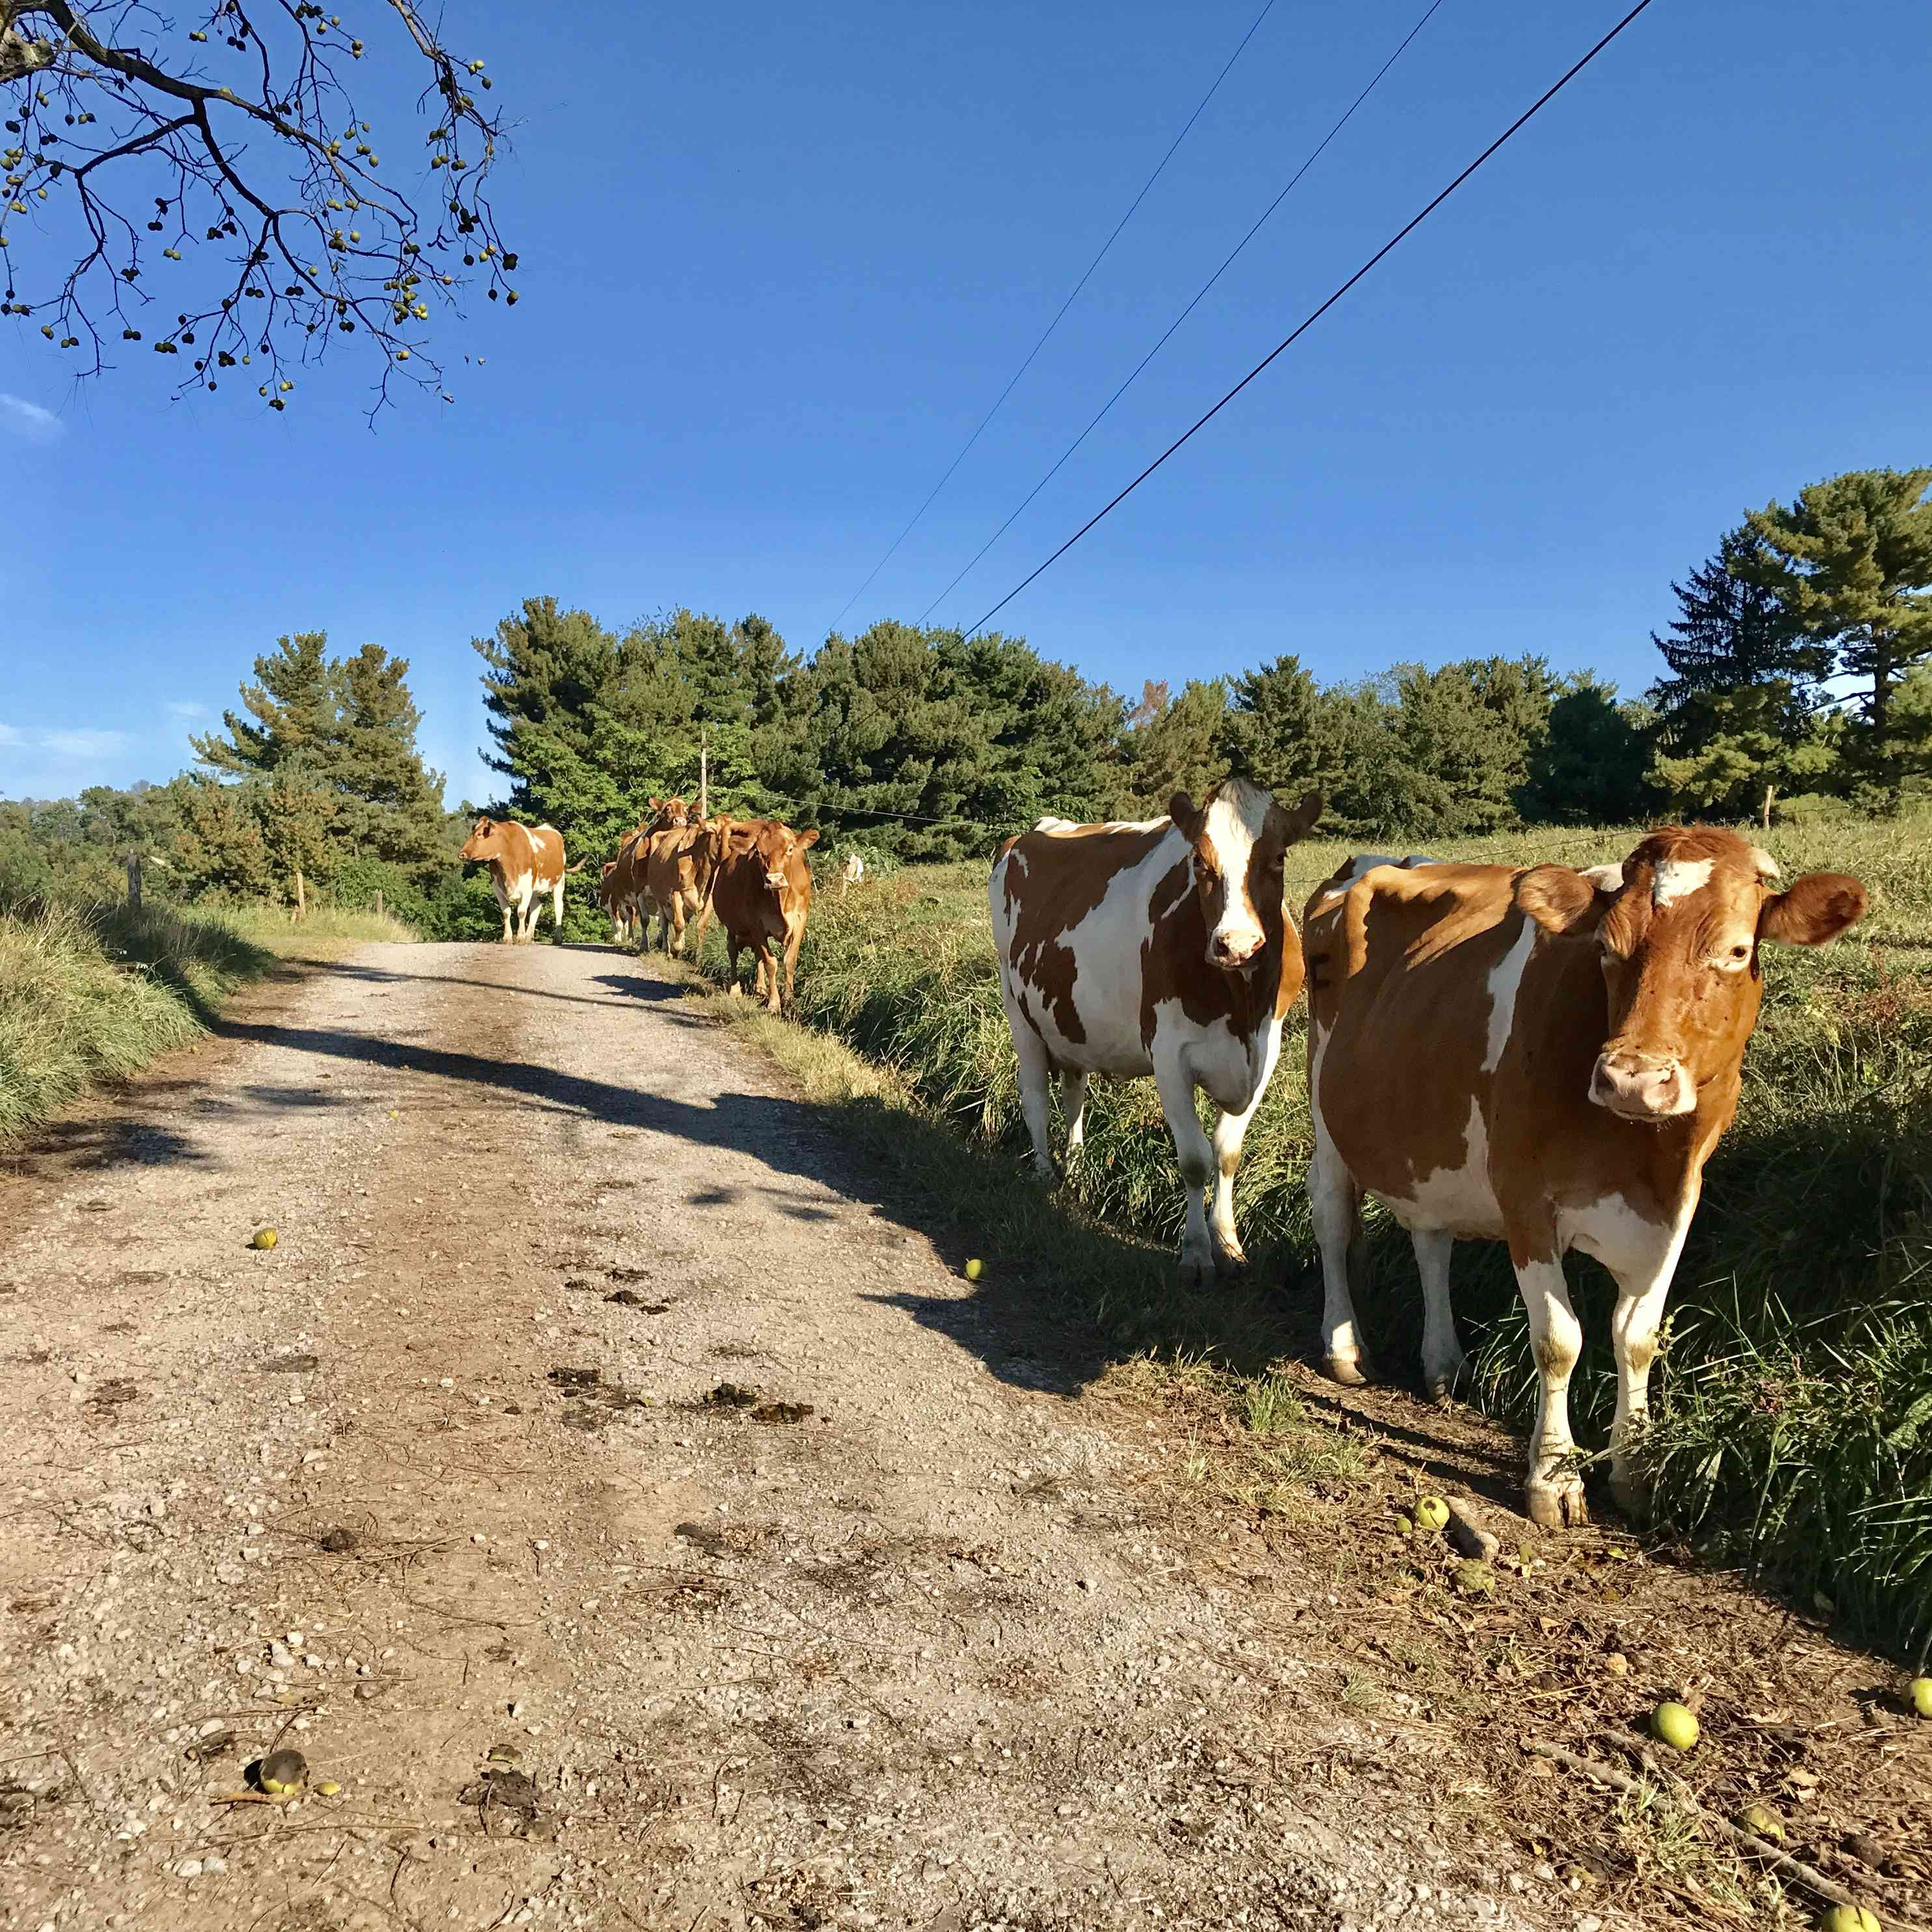 After a long day, the only traffic you'll see on the author's street are the 30 cows returning from a long day of roaming the neighborhood.